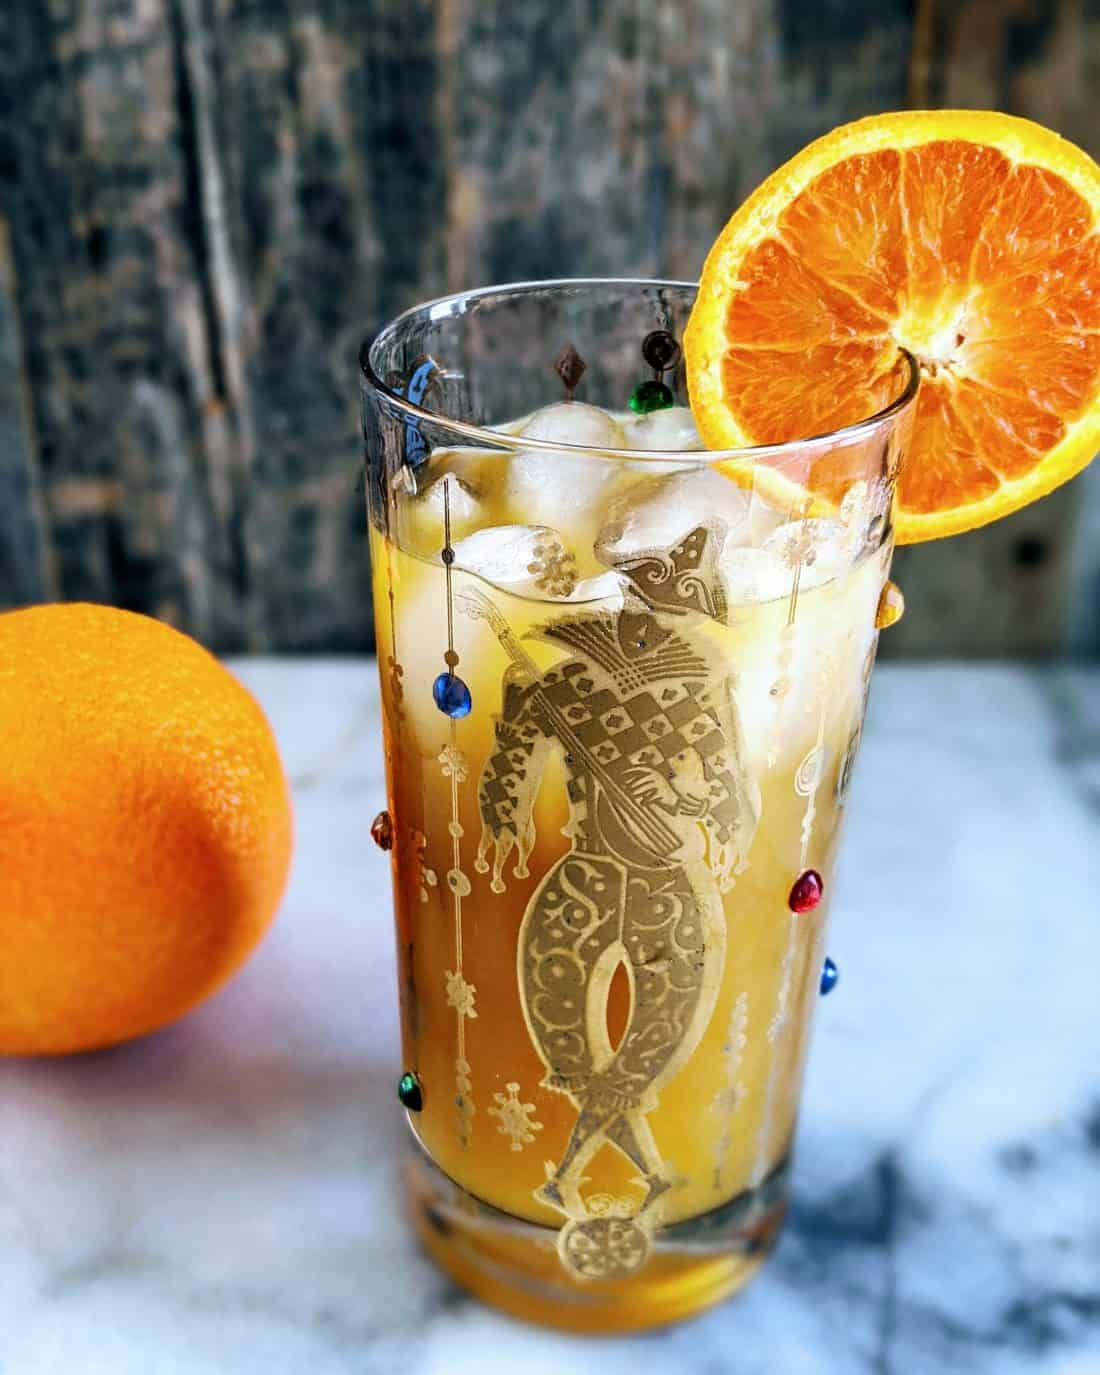 Vertical photo of a Brass Monkey Cocktail in a Mardis Gras style tumbler garnished with an orange. Whole orange in the background.